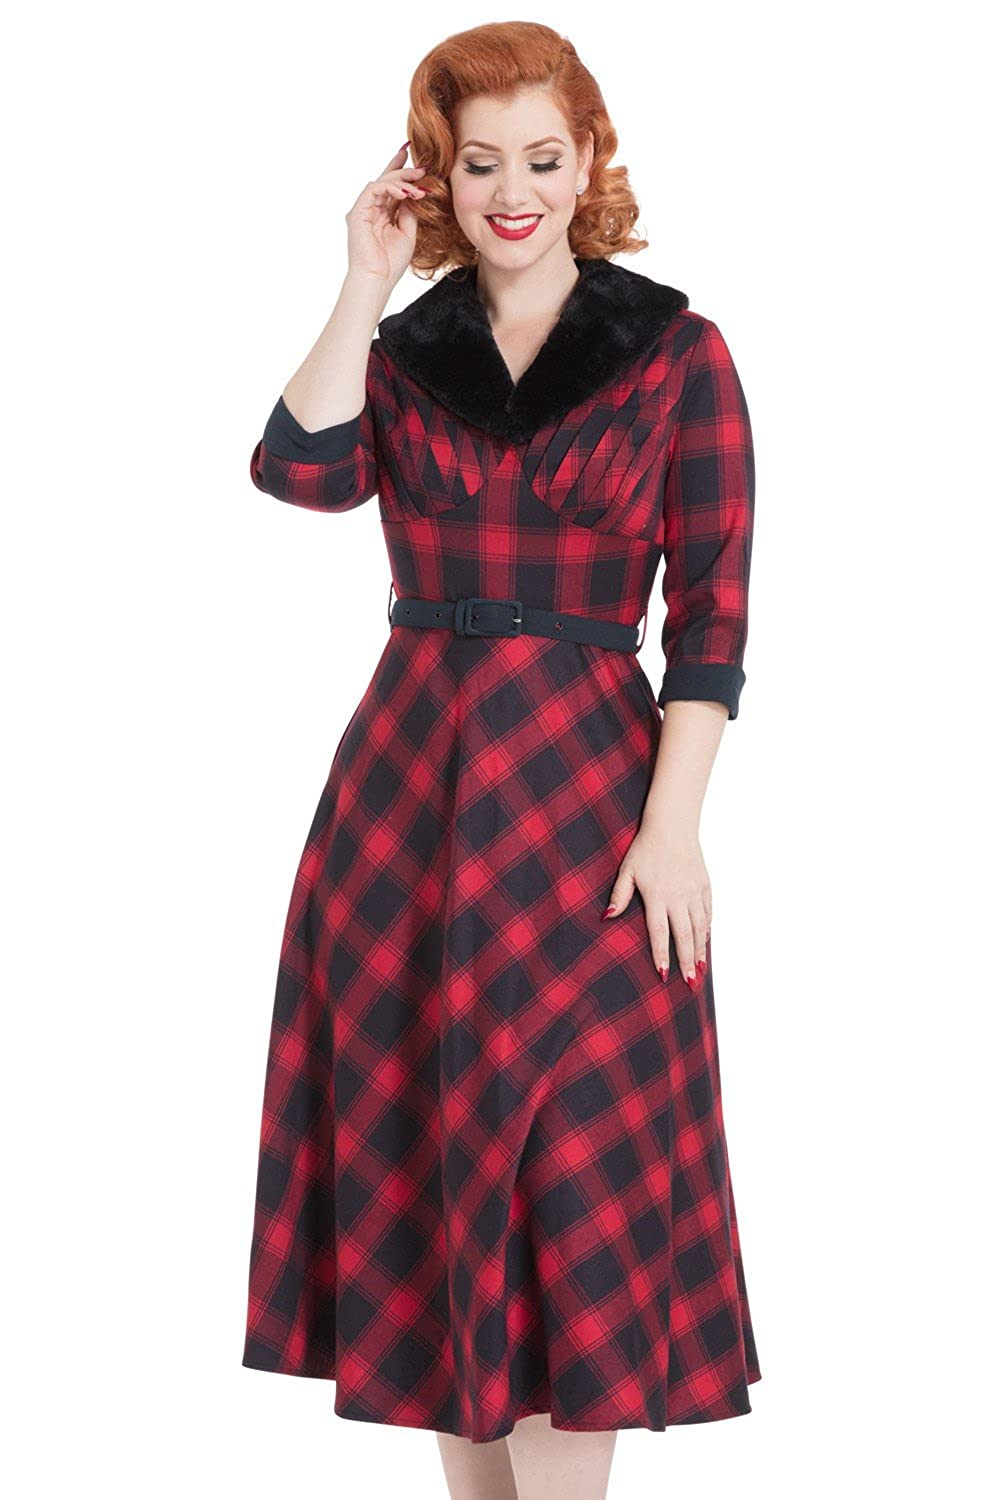 1950s Dresses, 50s Dresses | 1950s Style Dresses Voodoo Vixen Bettie Plaid Check Vintage Retro 50s Faux Fur Evening Party Dress $69.99 AT vintagedancer.com